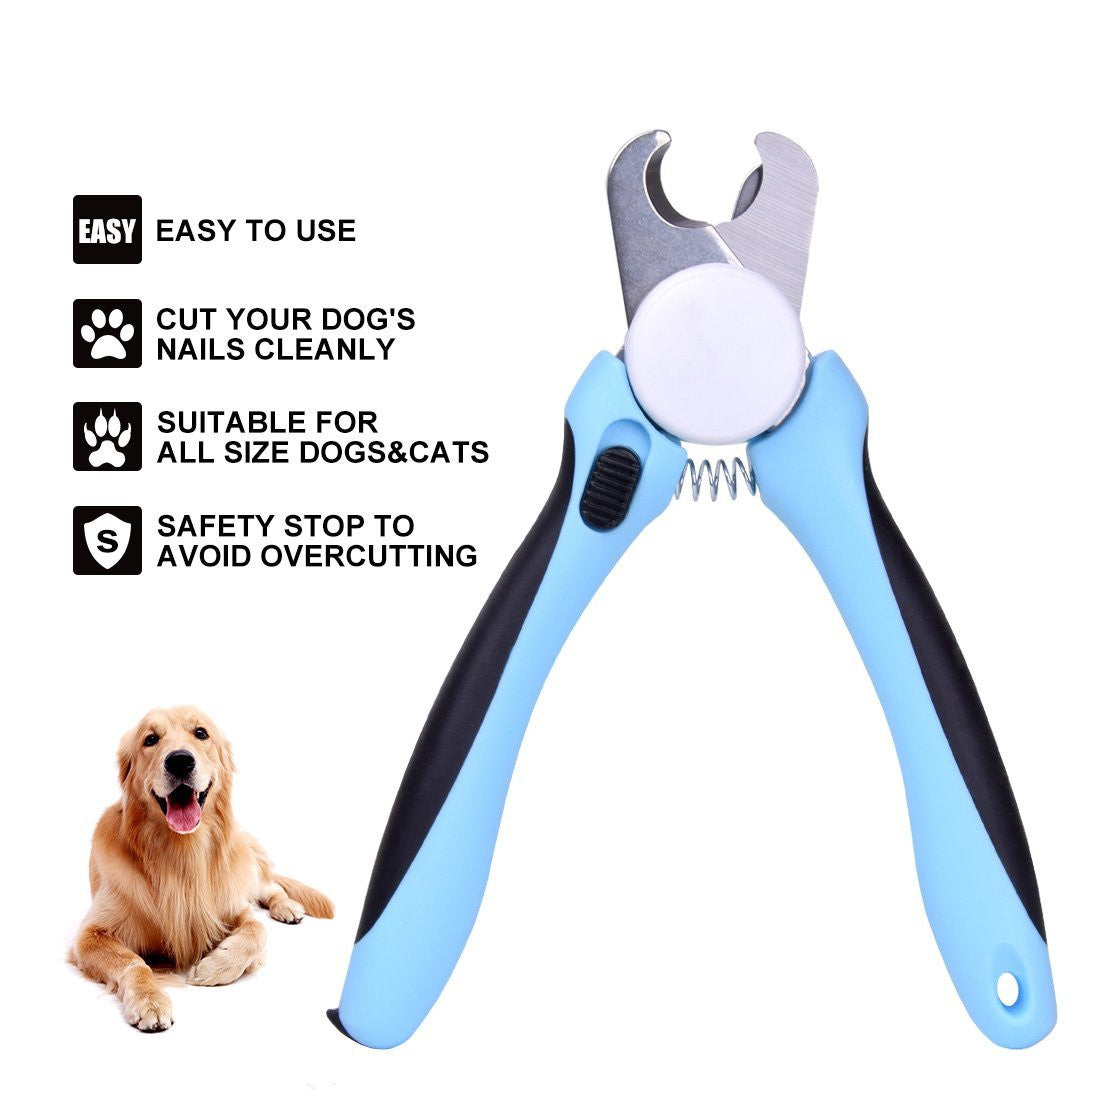 Dog Nail Clippers and Trimmer By - With Safety Guard to Avoid Over ...